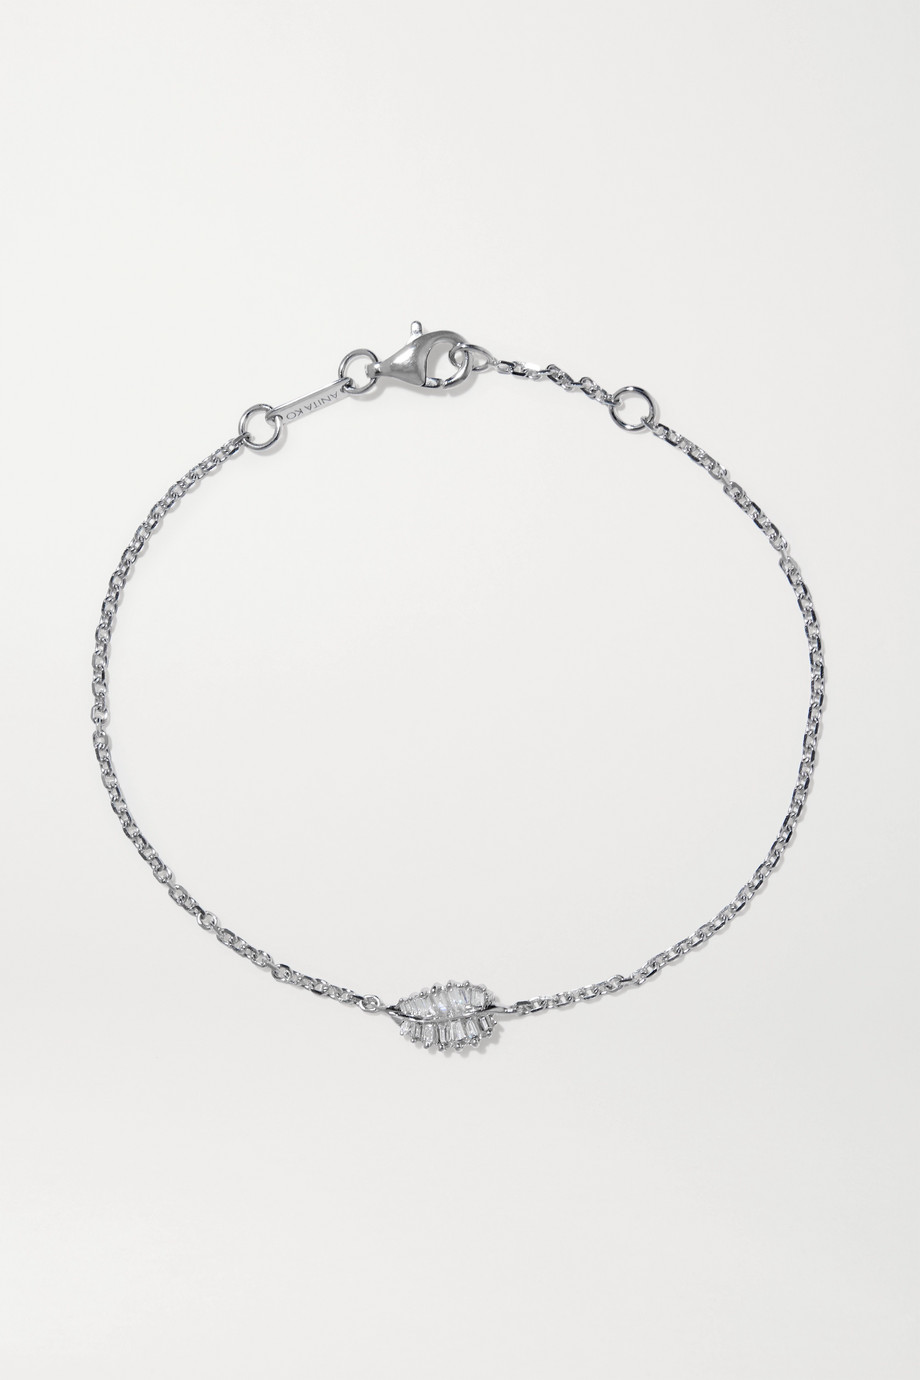 Anita Ko Palm Leaf 18-karat white gold diamond bracelet